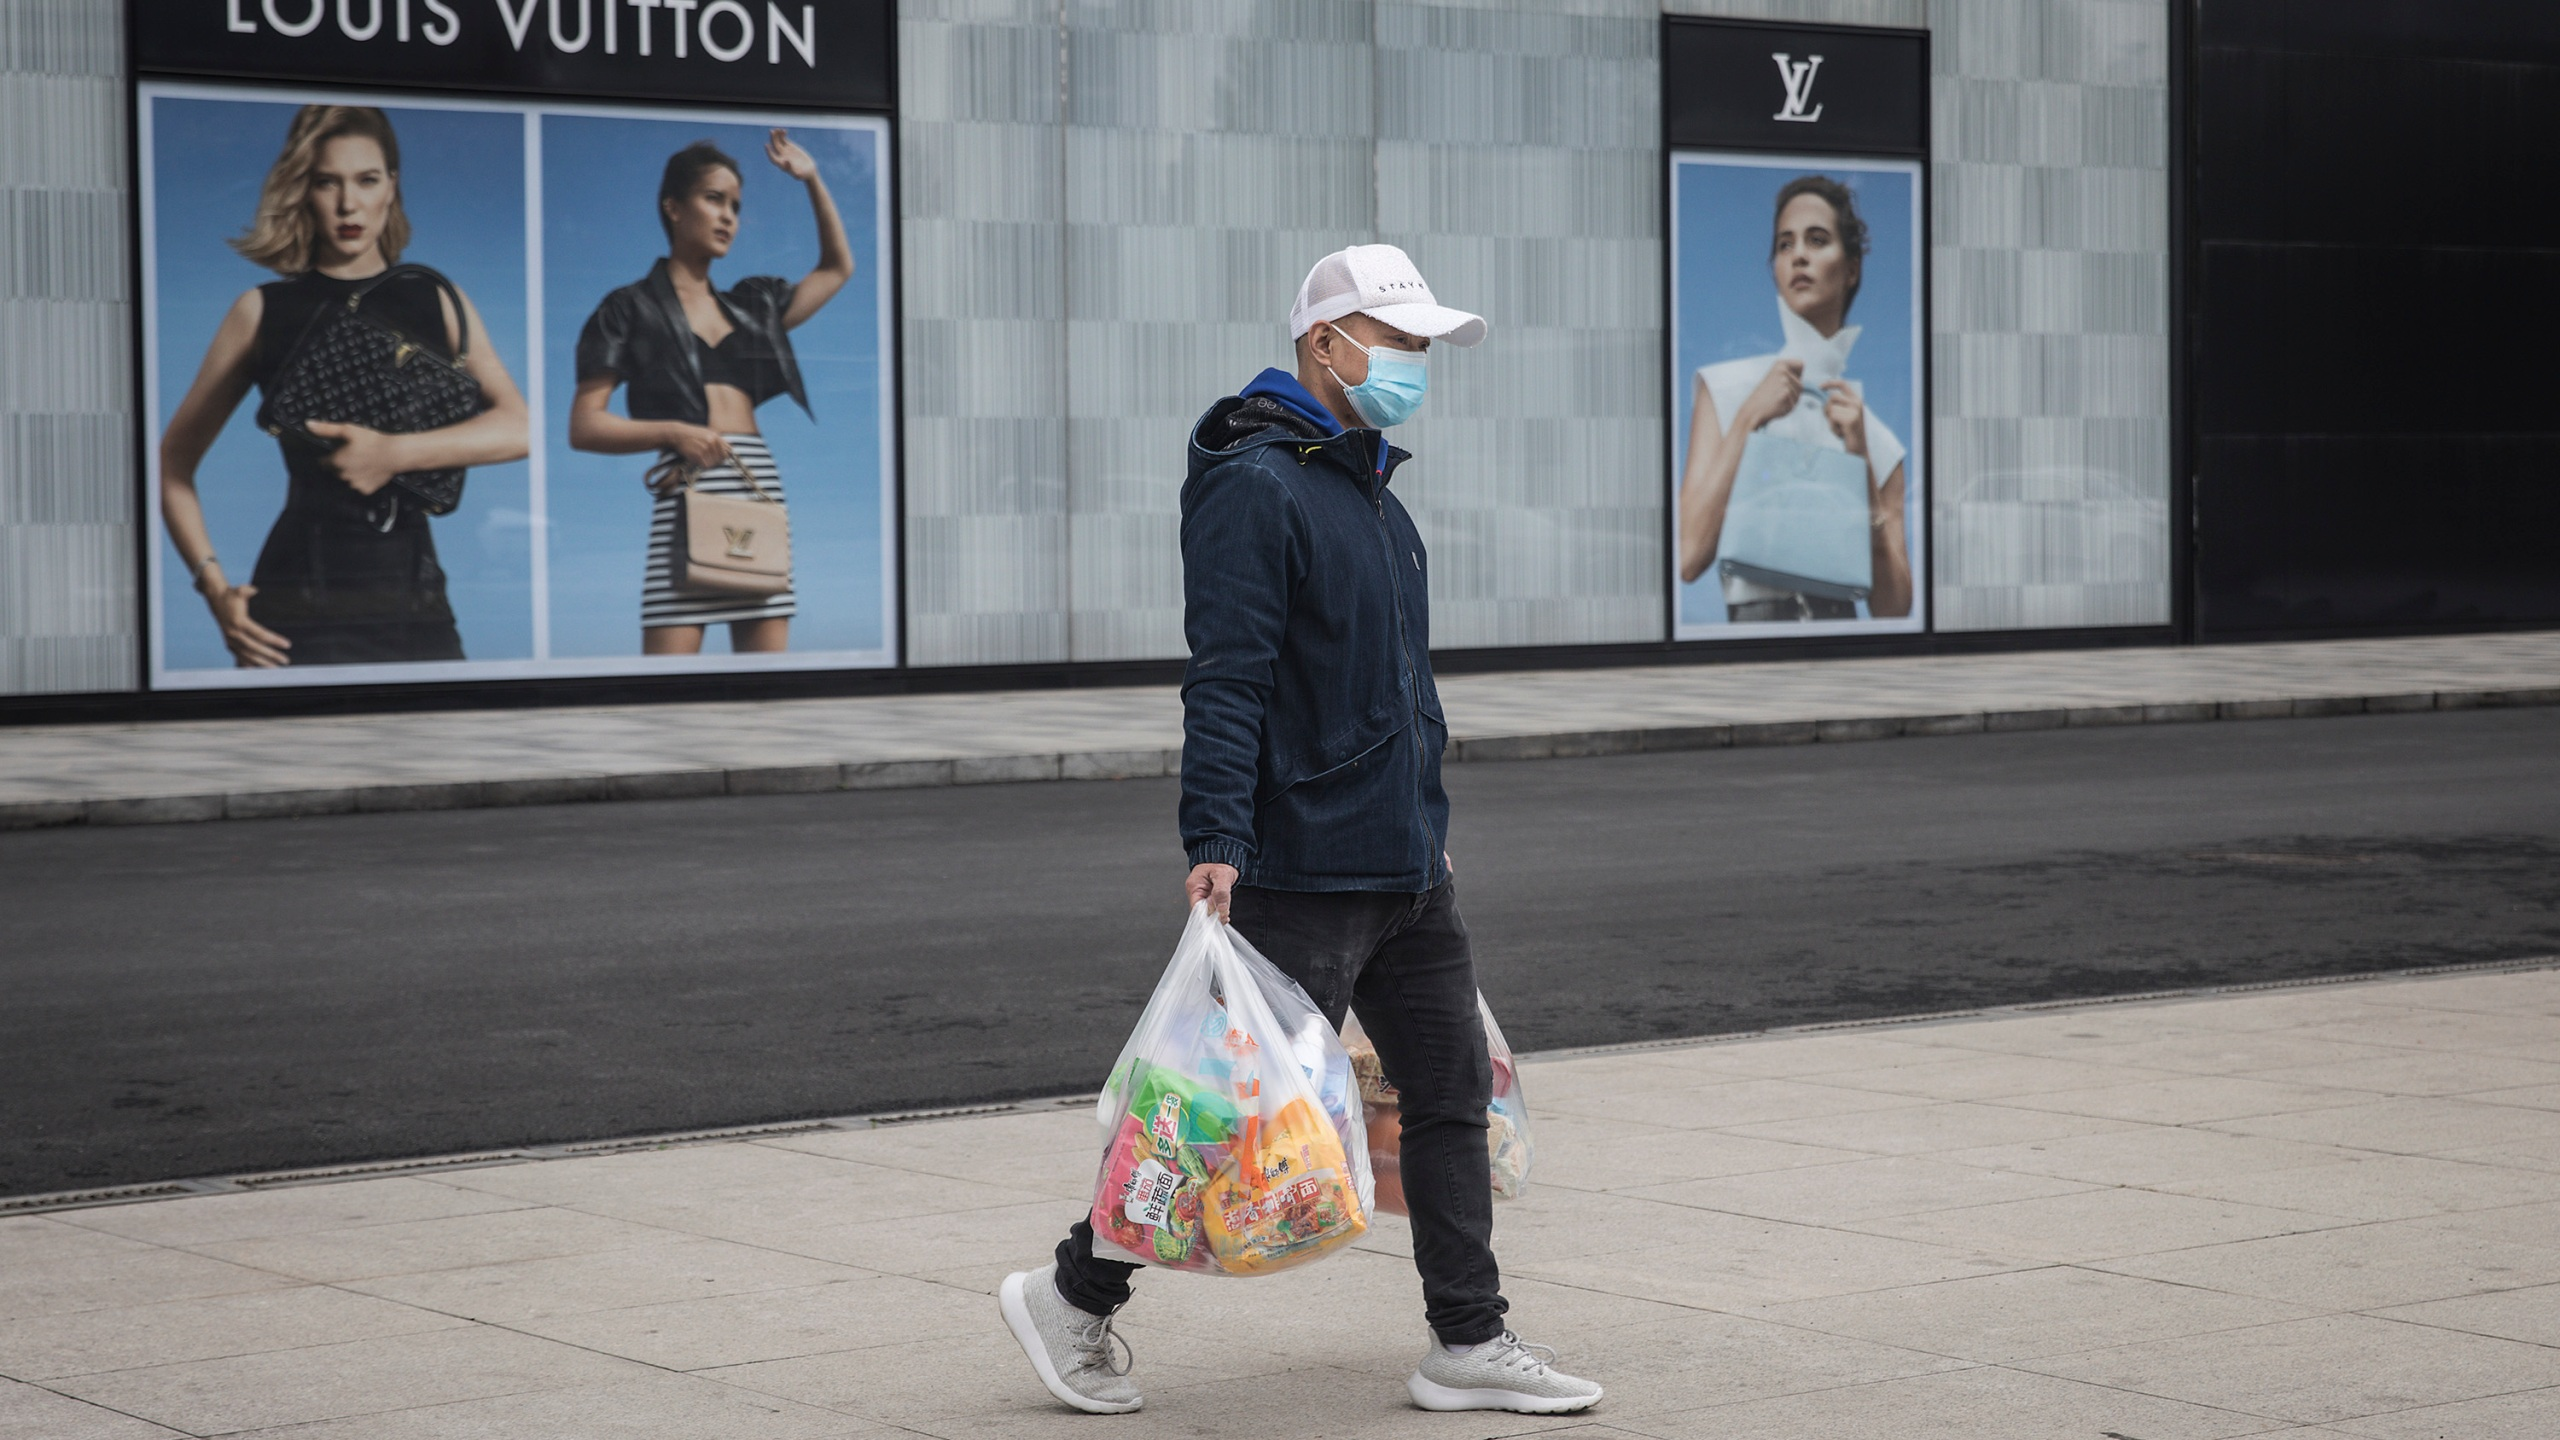 A man wearing a face mask passes a Louis Vuitton store outside Wuhan international plaza on March 30, 2020, in Hubei Province, China. (Getty Images)